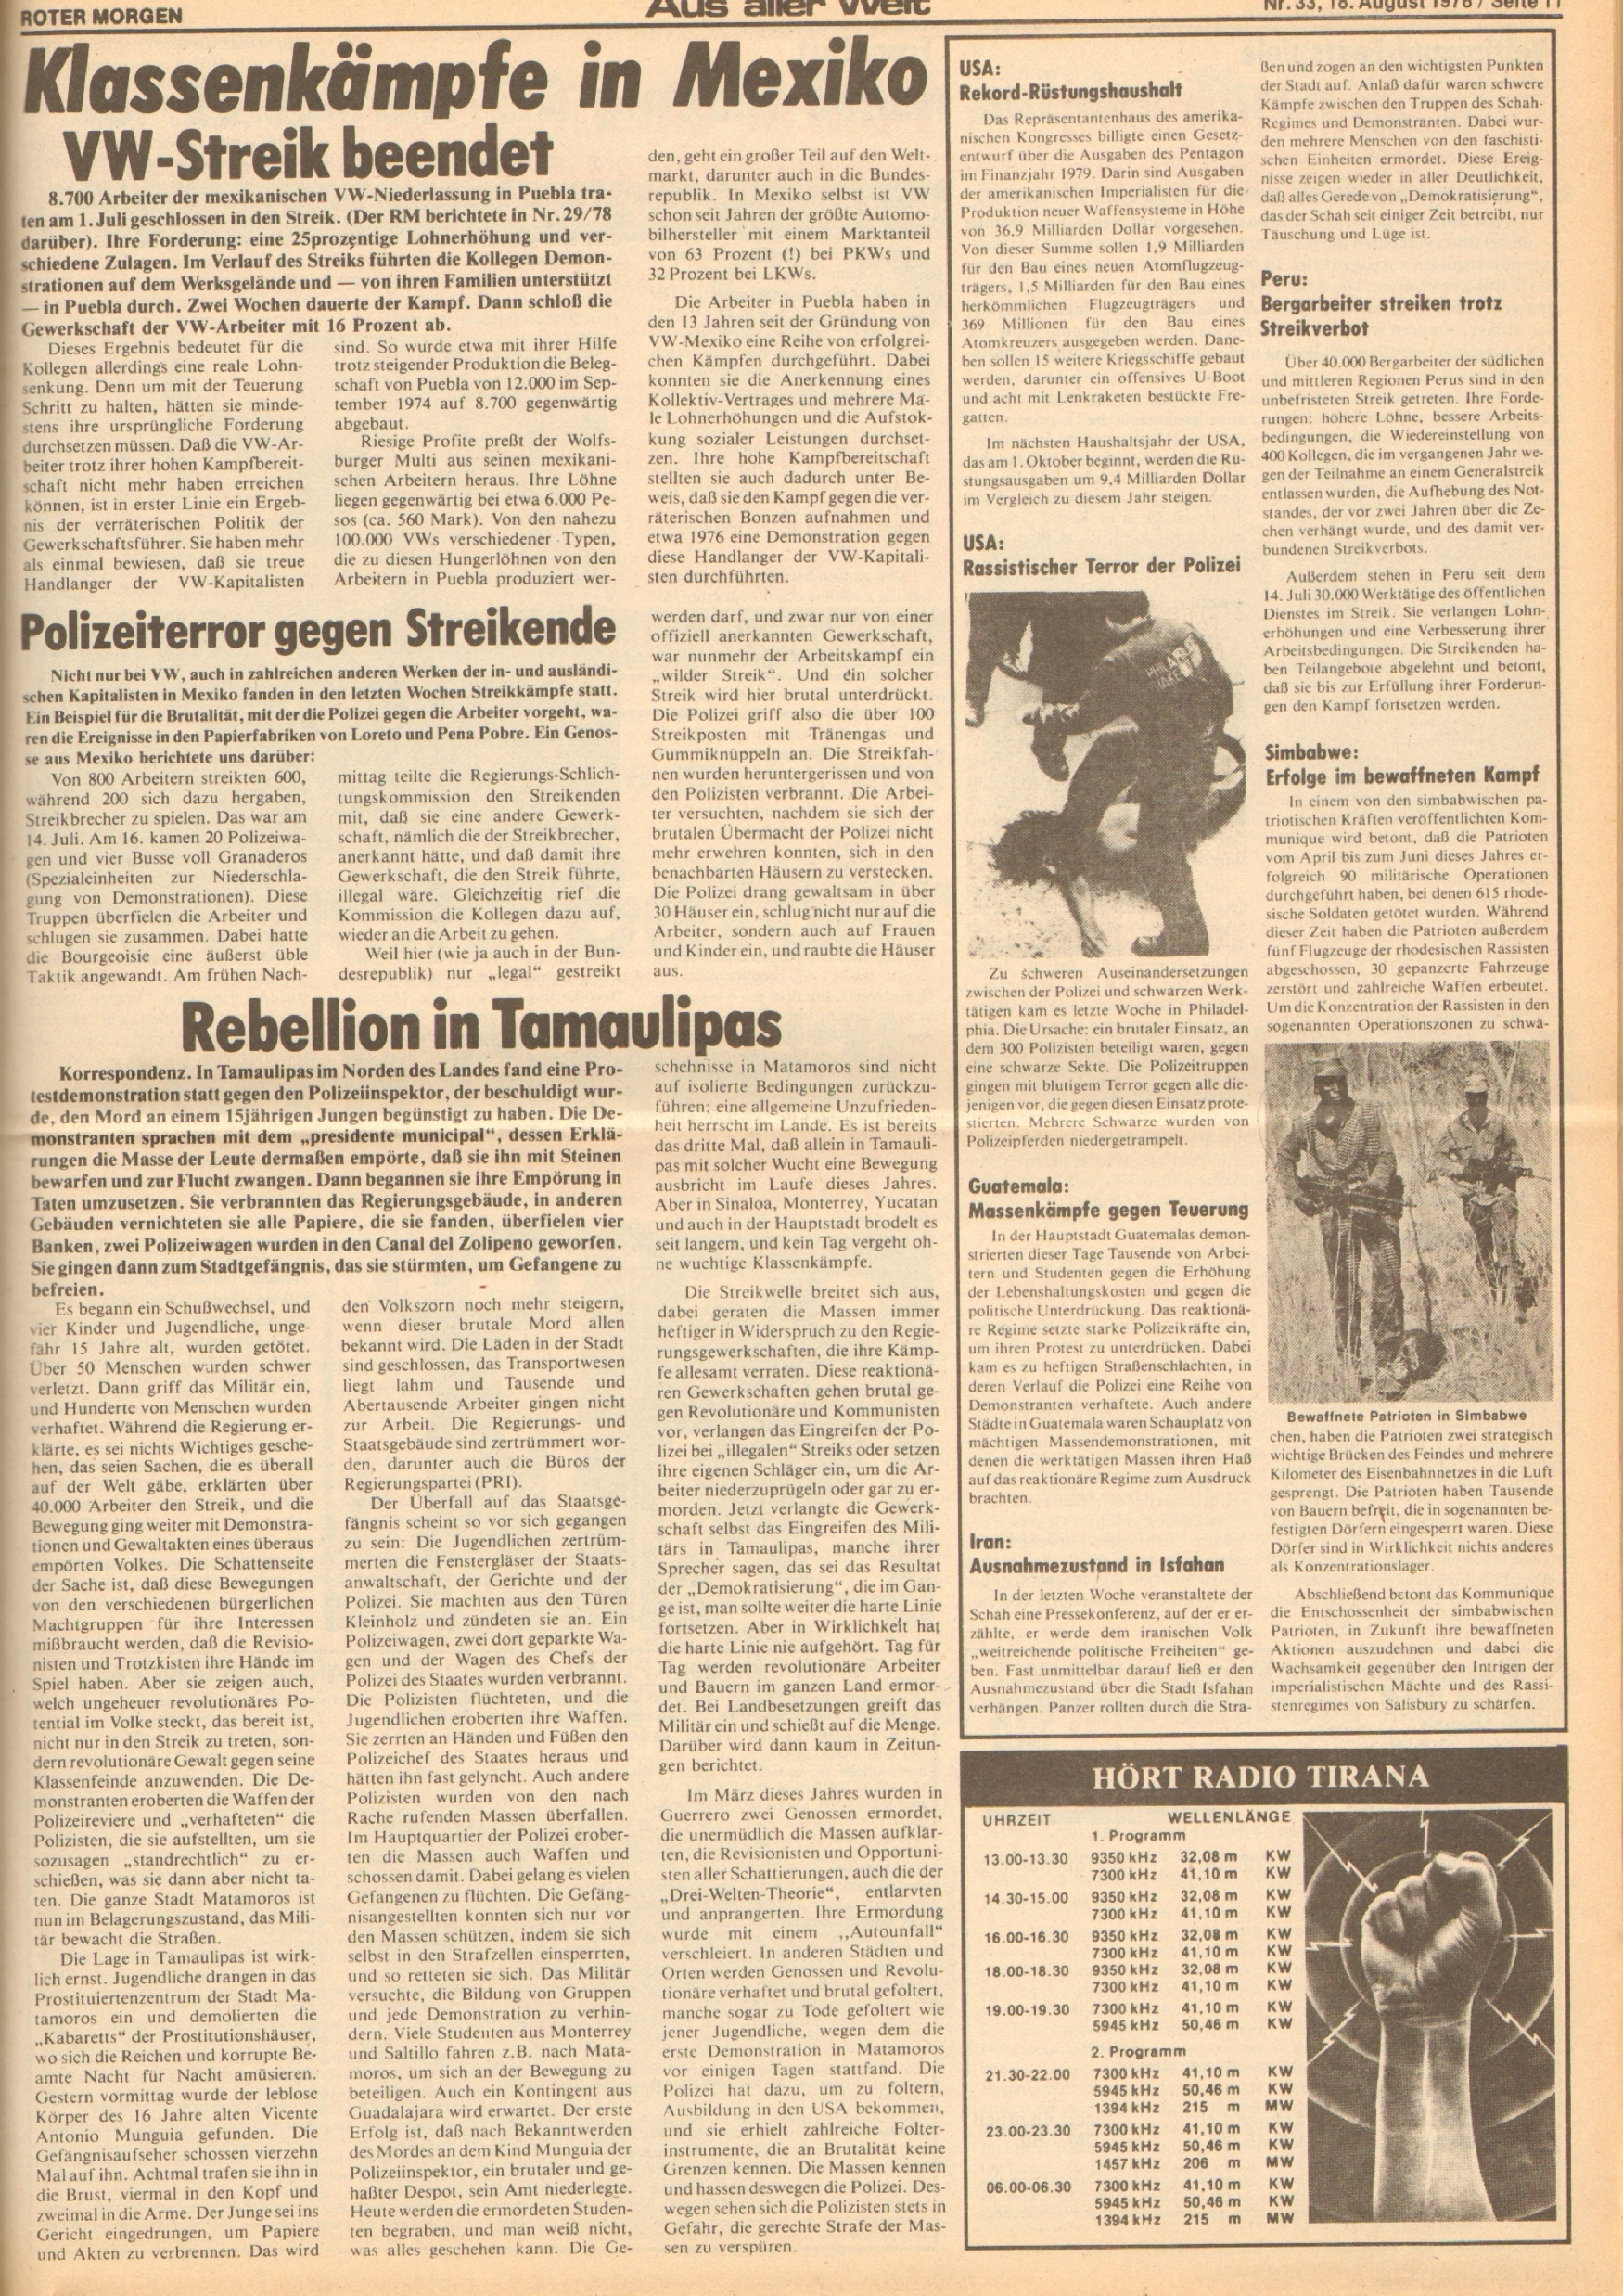 Roter Morgen, 12. Jg., 18. August 1978, Nr. 33, Seite 11